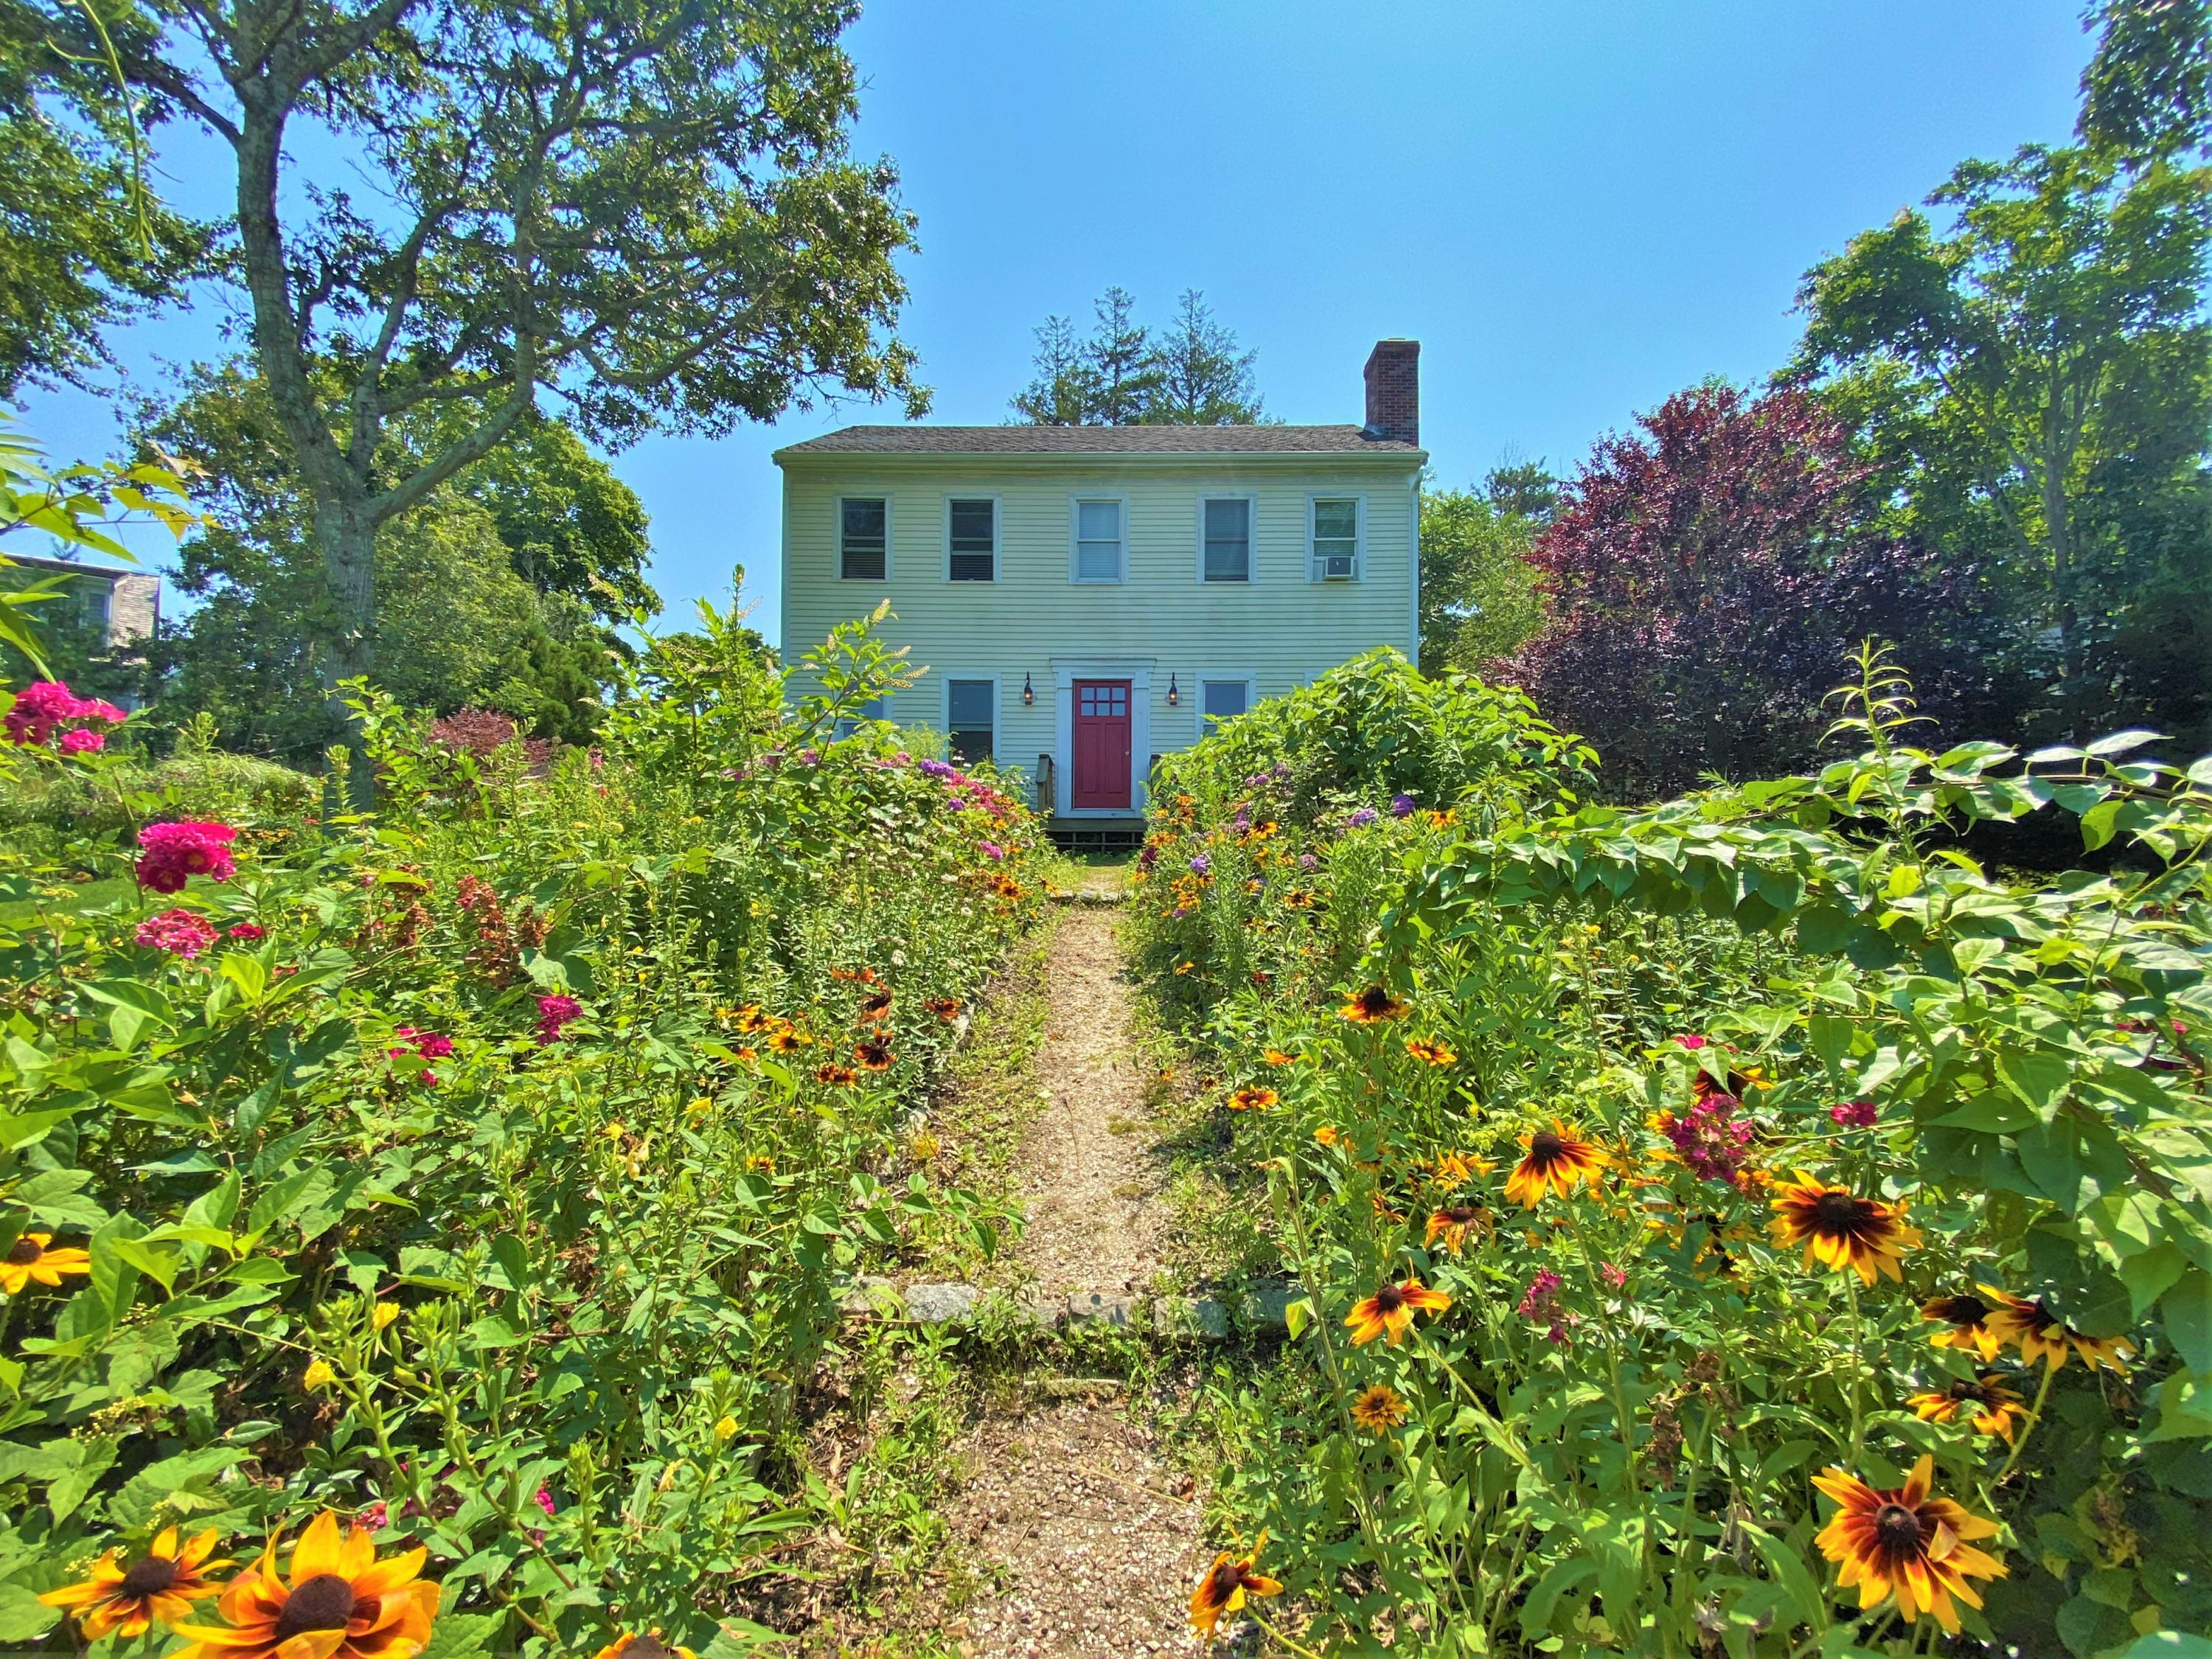 24 Ryders Cove Road, North Chatham MA, 02650 details